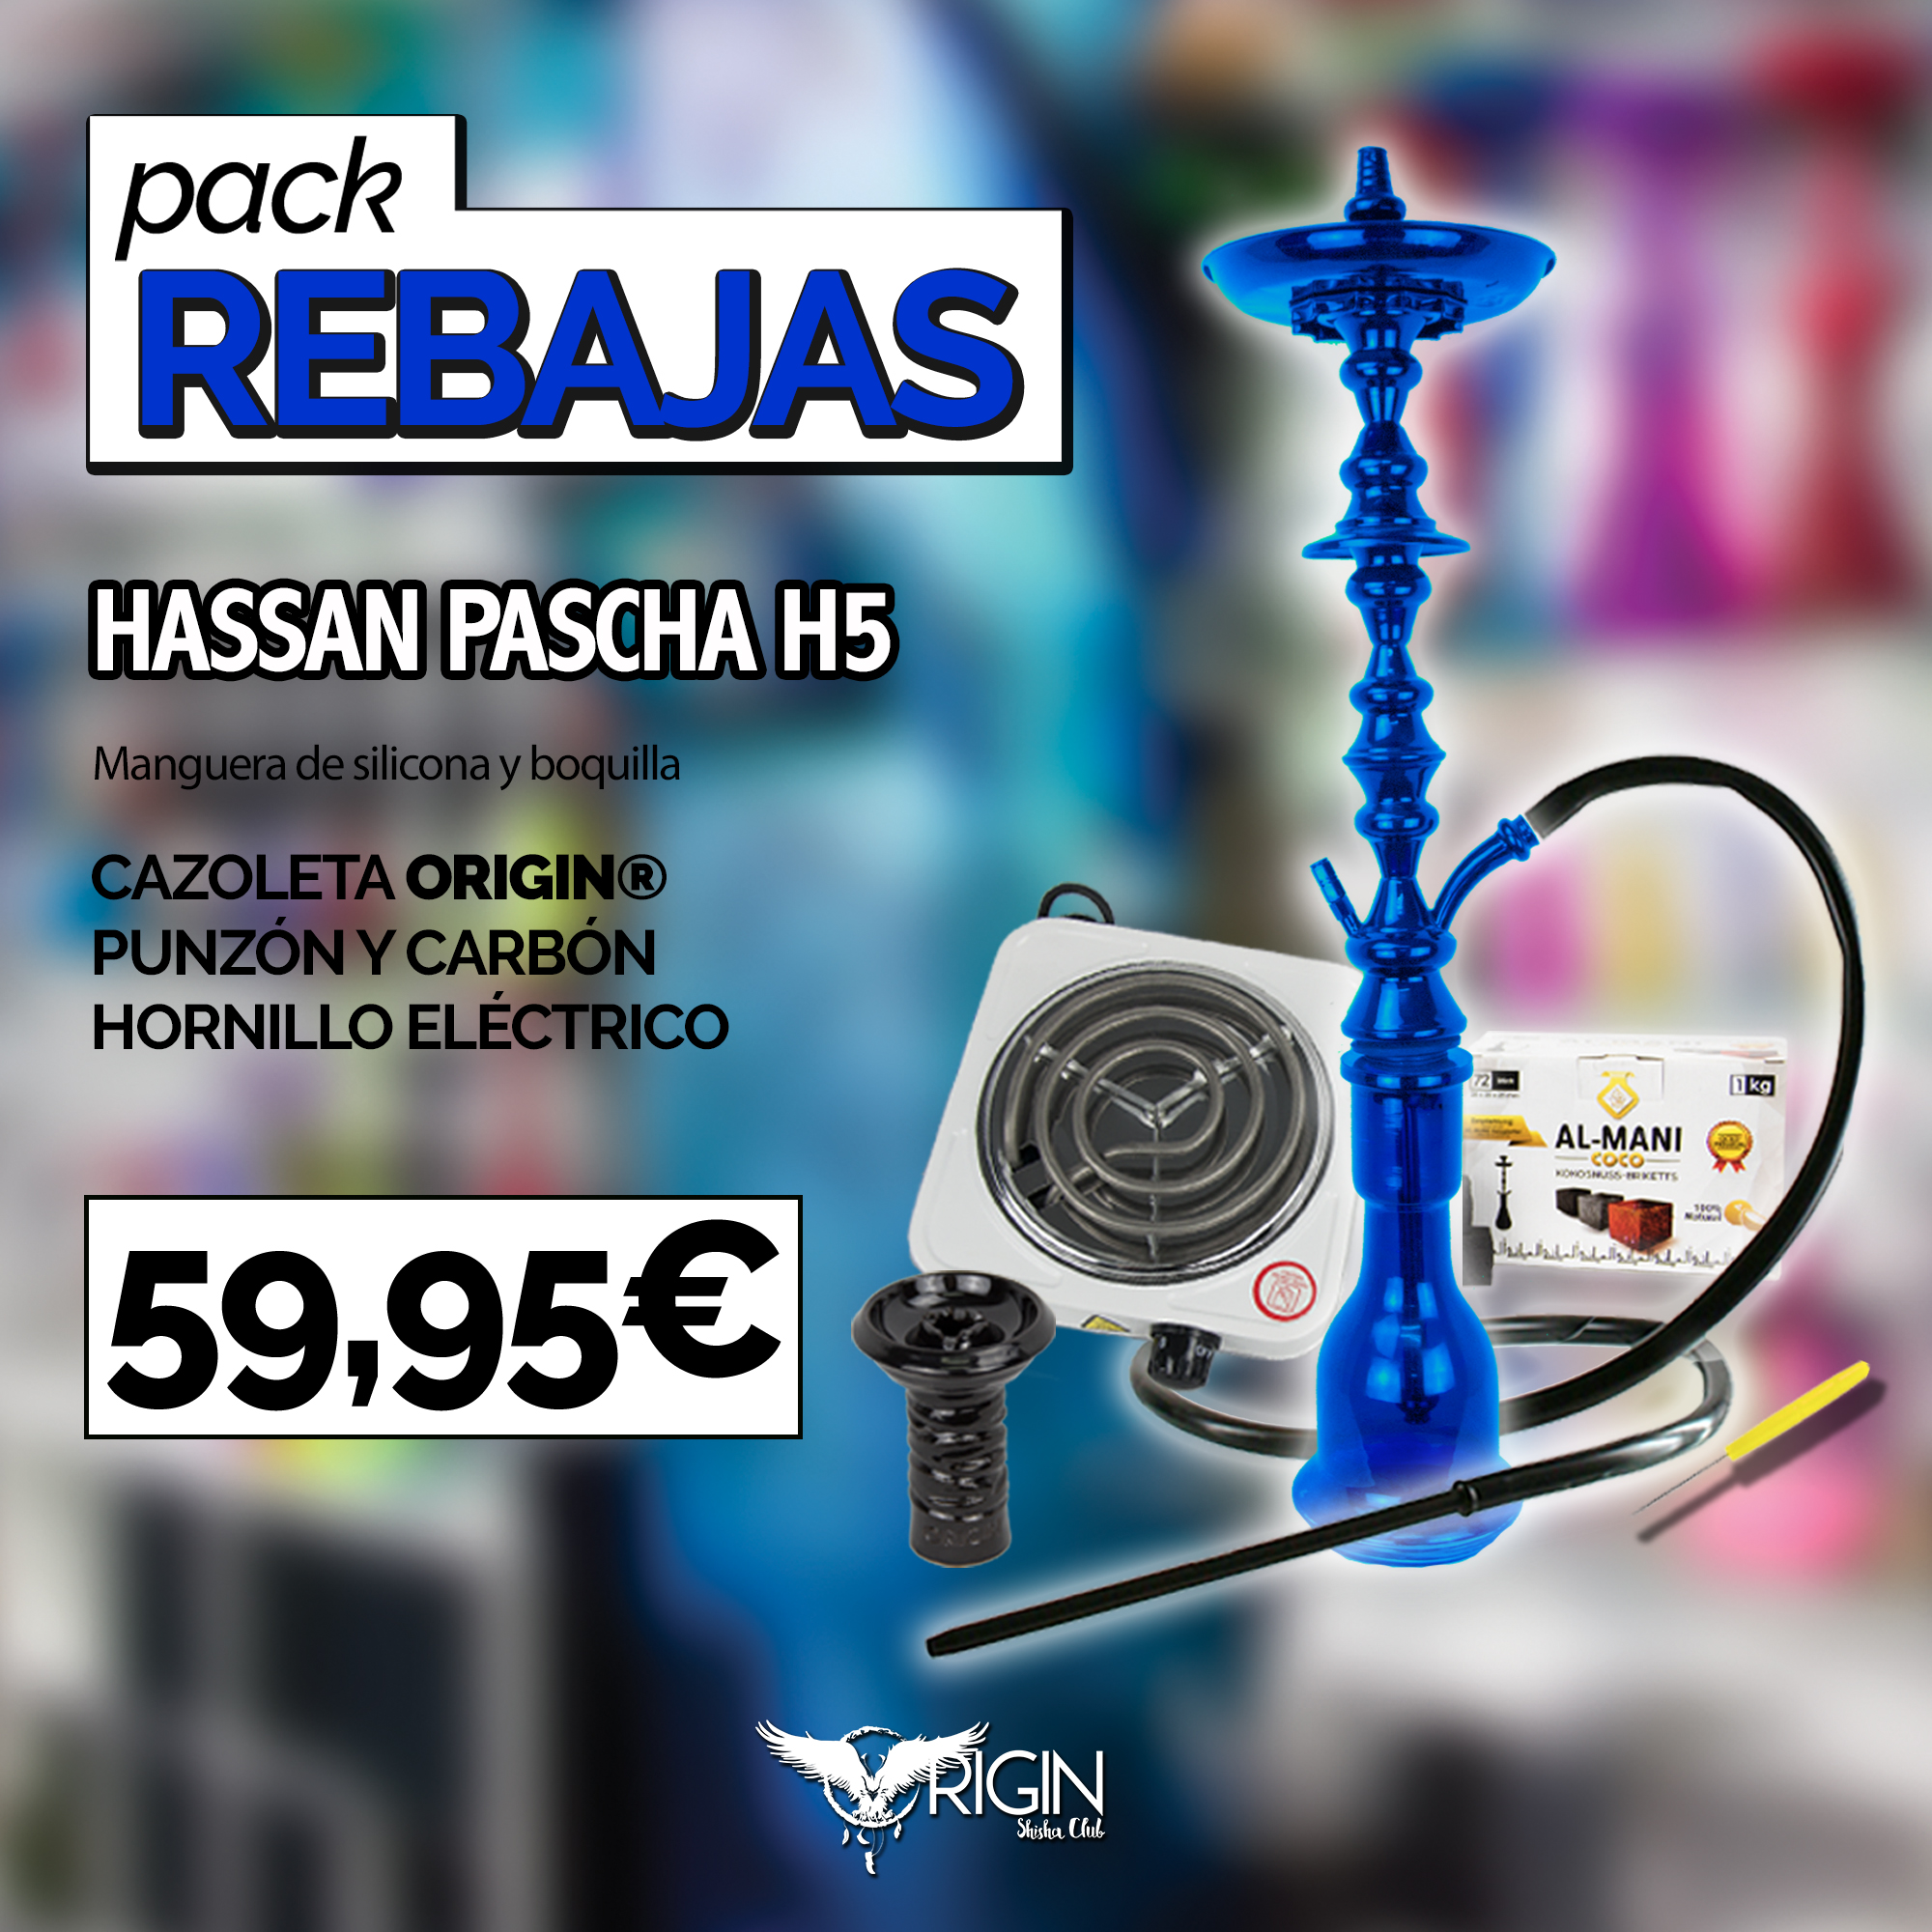 Pack-Rebajas-Origin